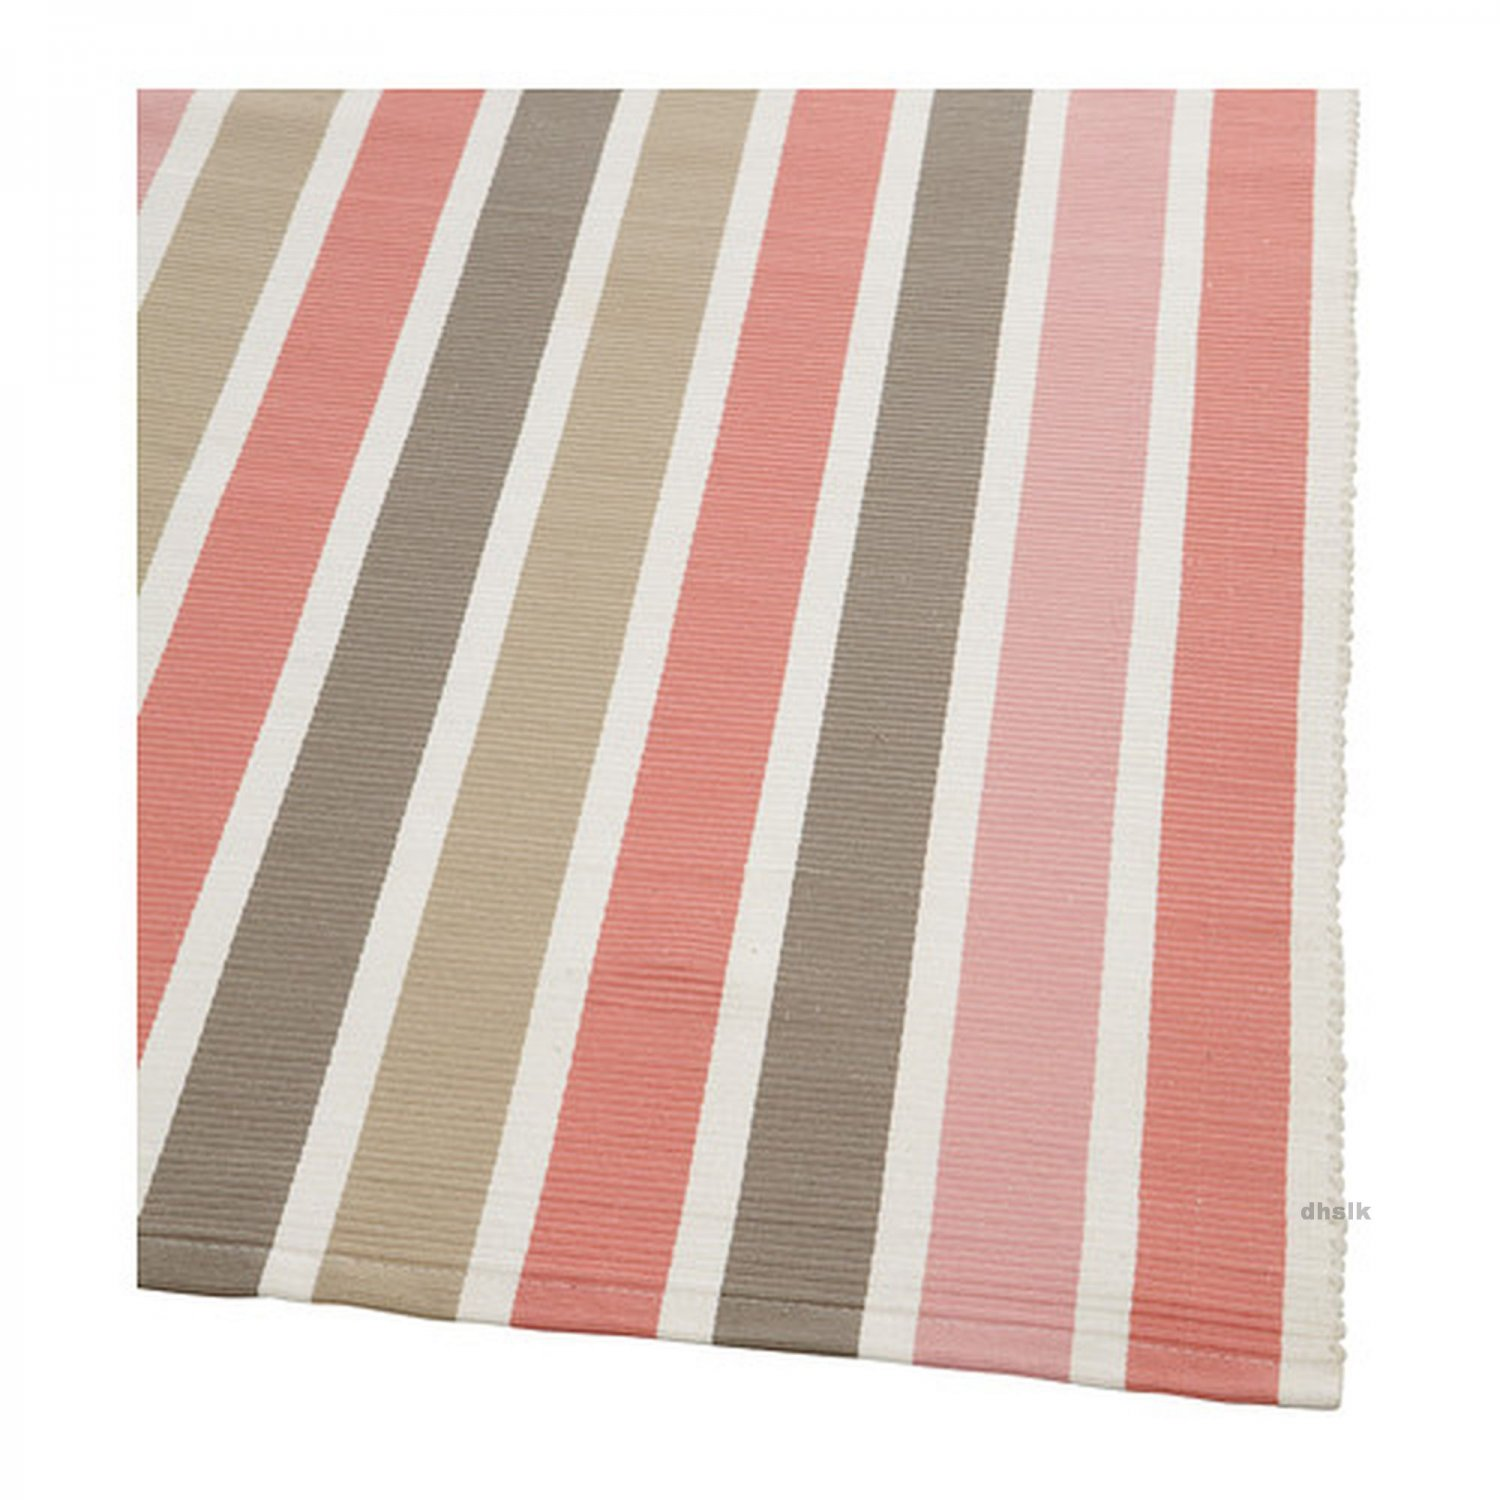 Ikea Emmie Pink Beige White Stripes Area Throw Runner Rug